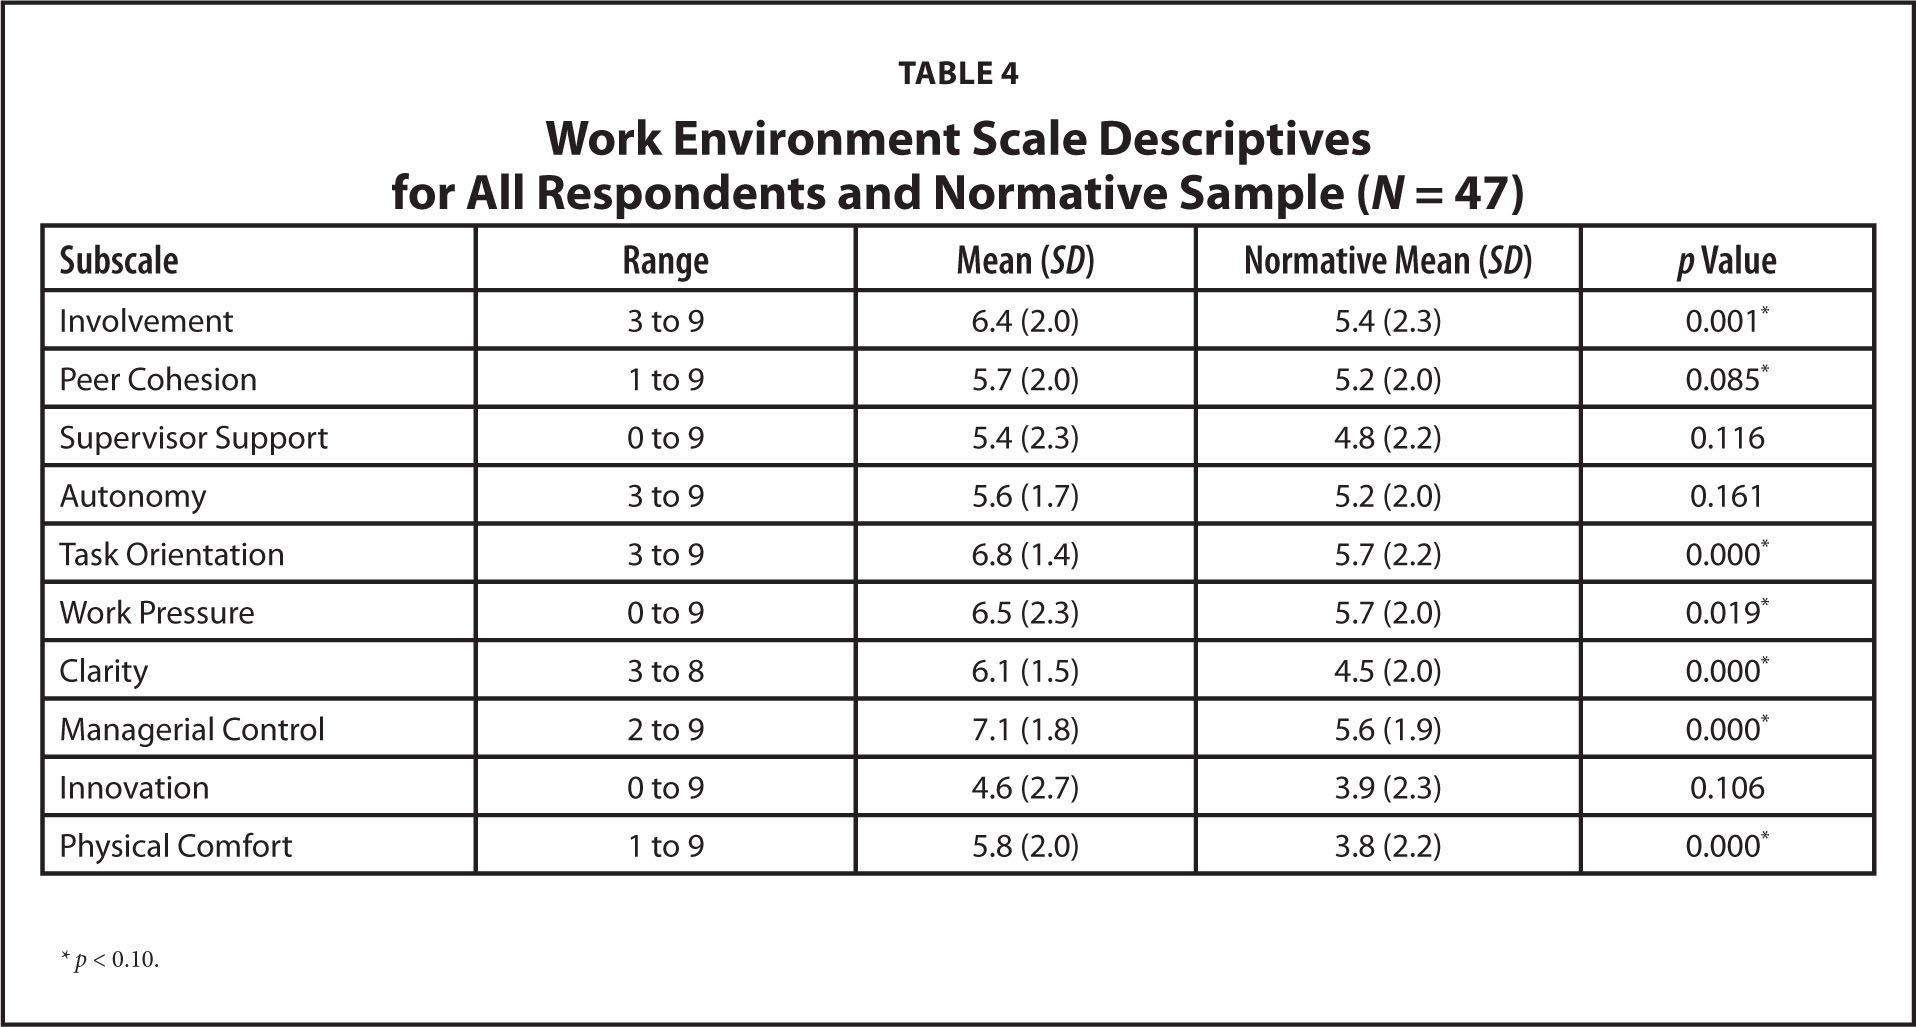 Work Environment Scale Descriptives for All Respondents and Normative Sample (N = 47)